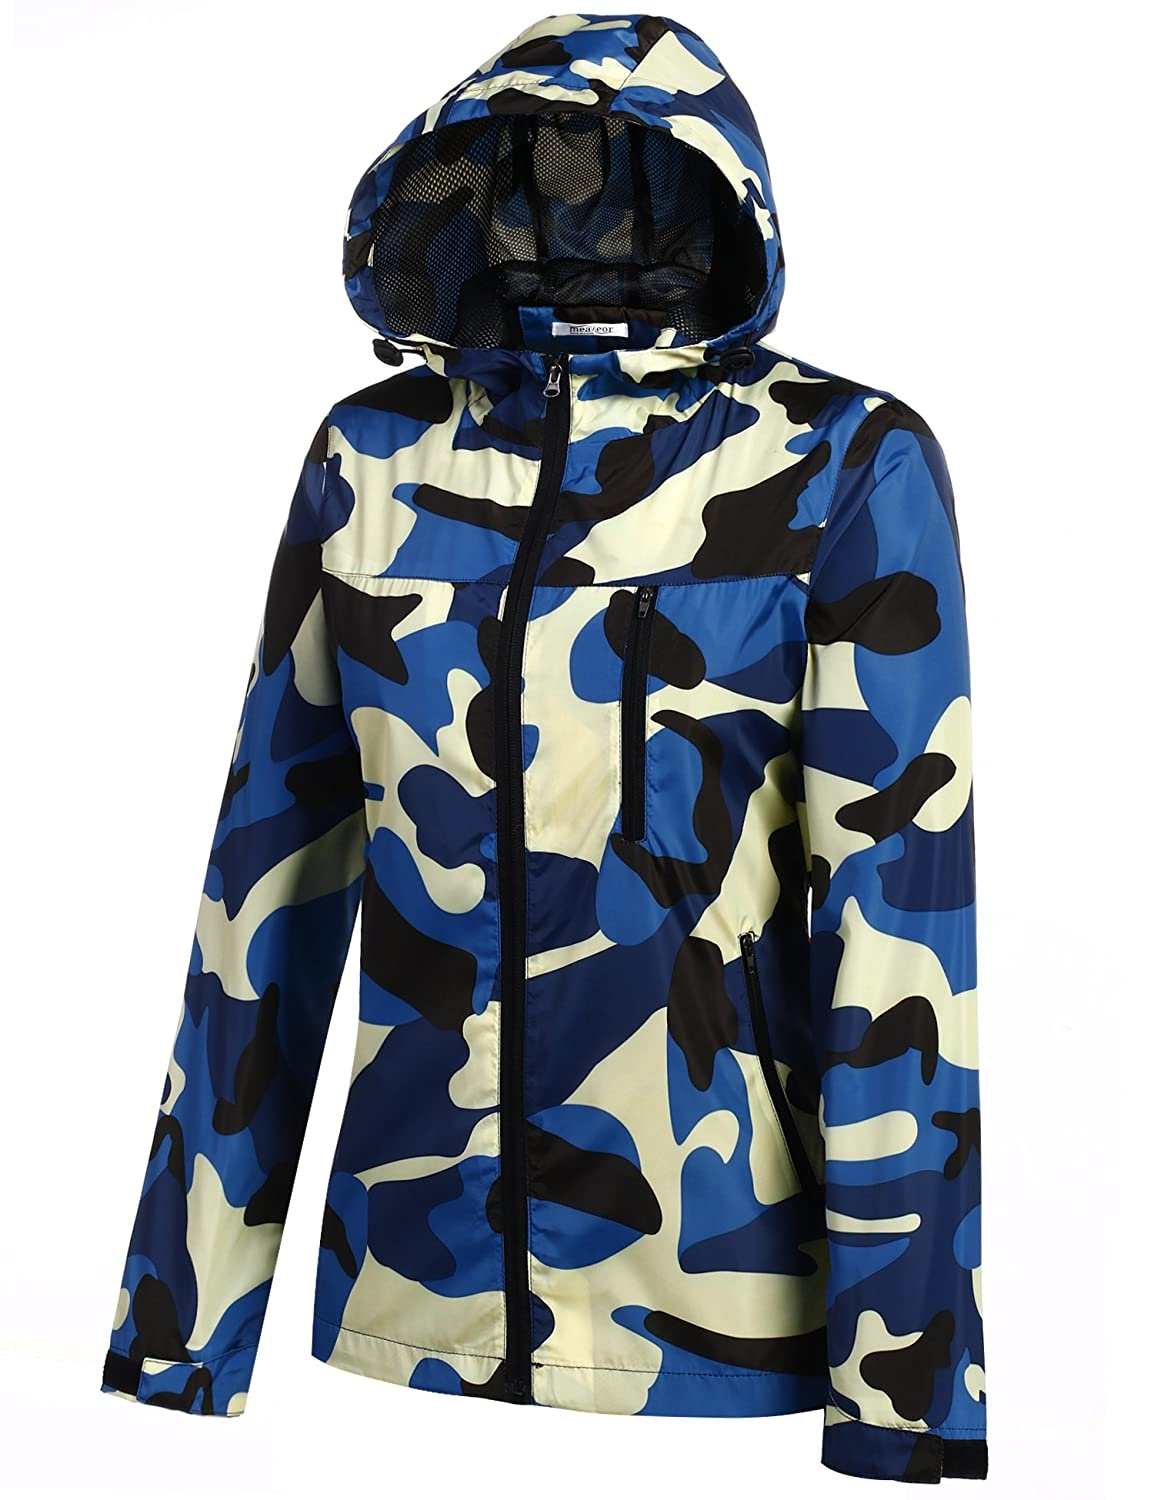 82c85aeaaa002 Amazon.com: Meaneor Women's Lightweight Military Camouflage Hooded Venture  Jacket and Outdoor Waterproof Raincoat: Clothing